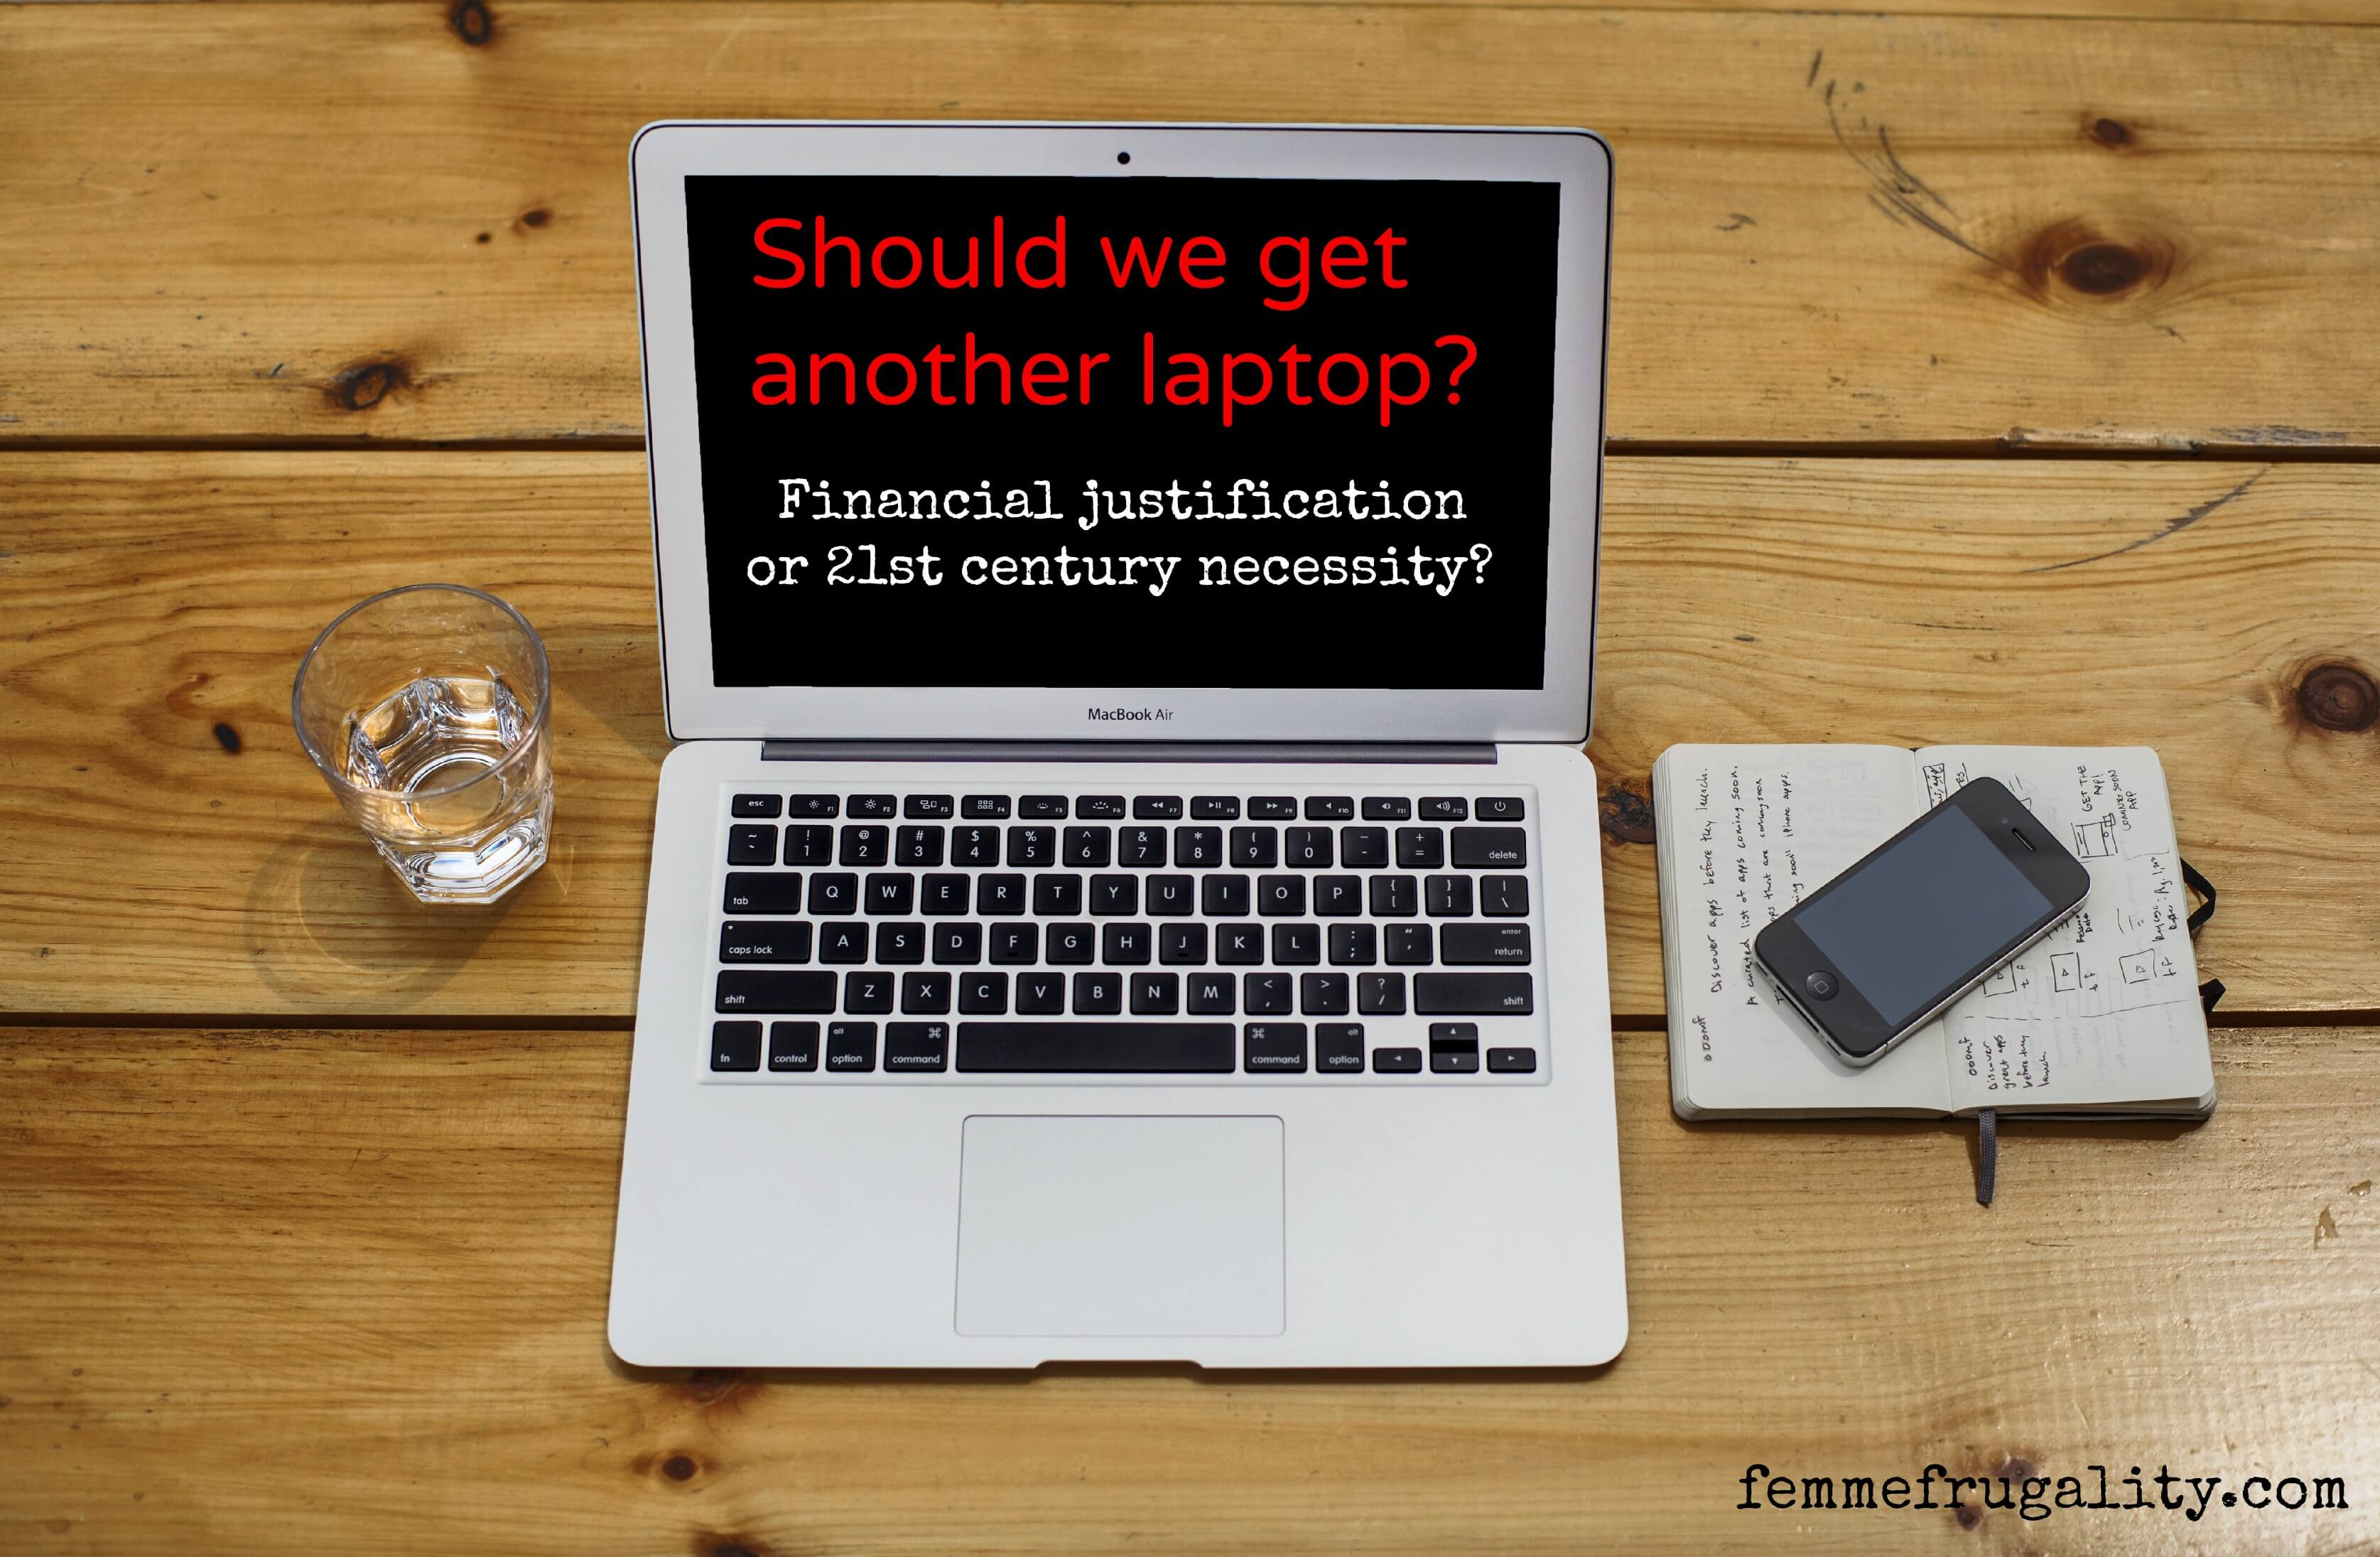 I think we need better time management. He thinks we need another computer. One option is free, the other costs hundreds. We need your opinion!